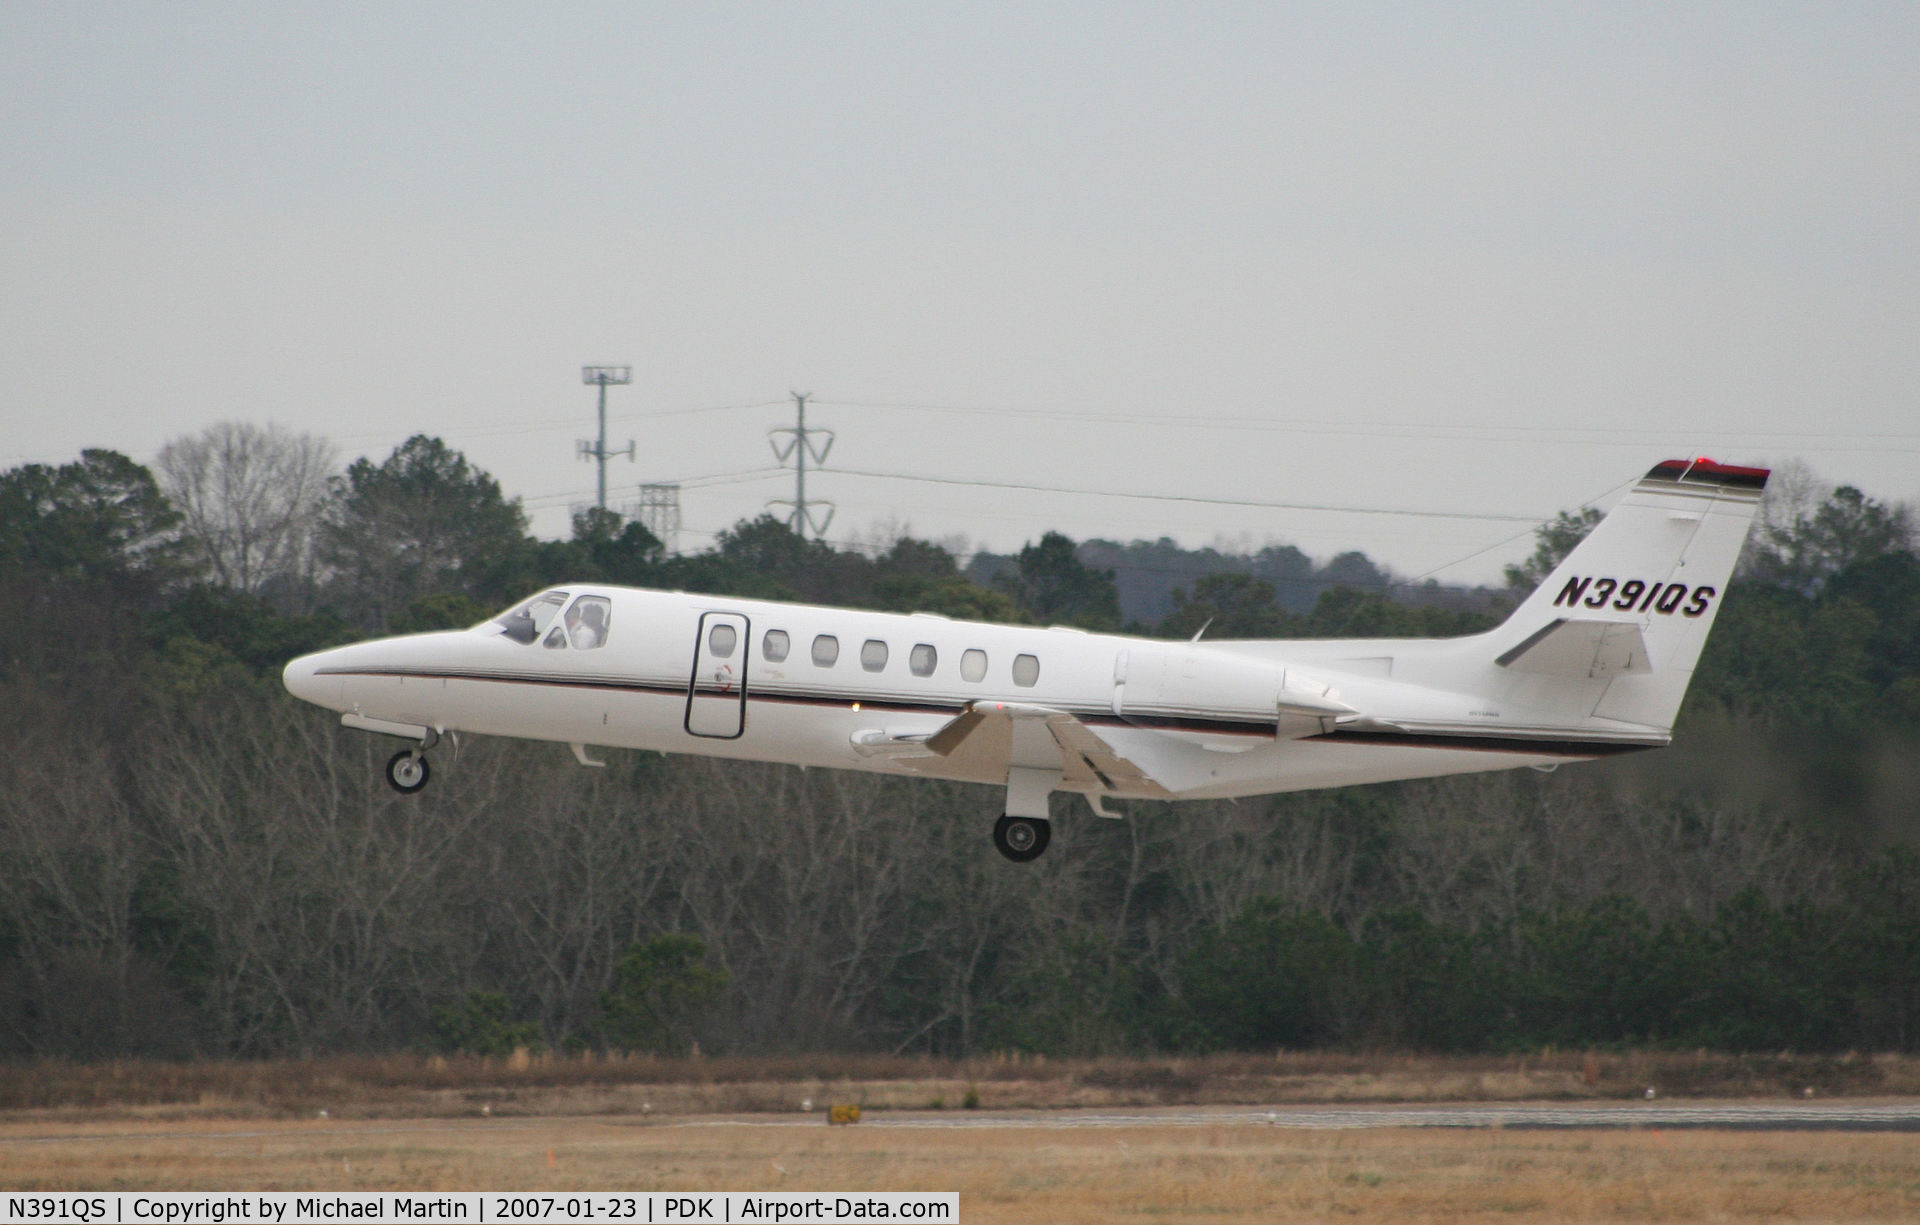 N391QS, 1998 Cessna 560 C/N 560-0493, Taking off from Runway 2R